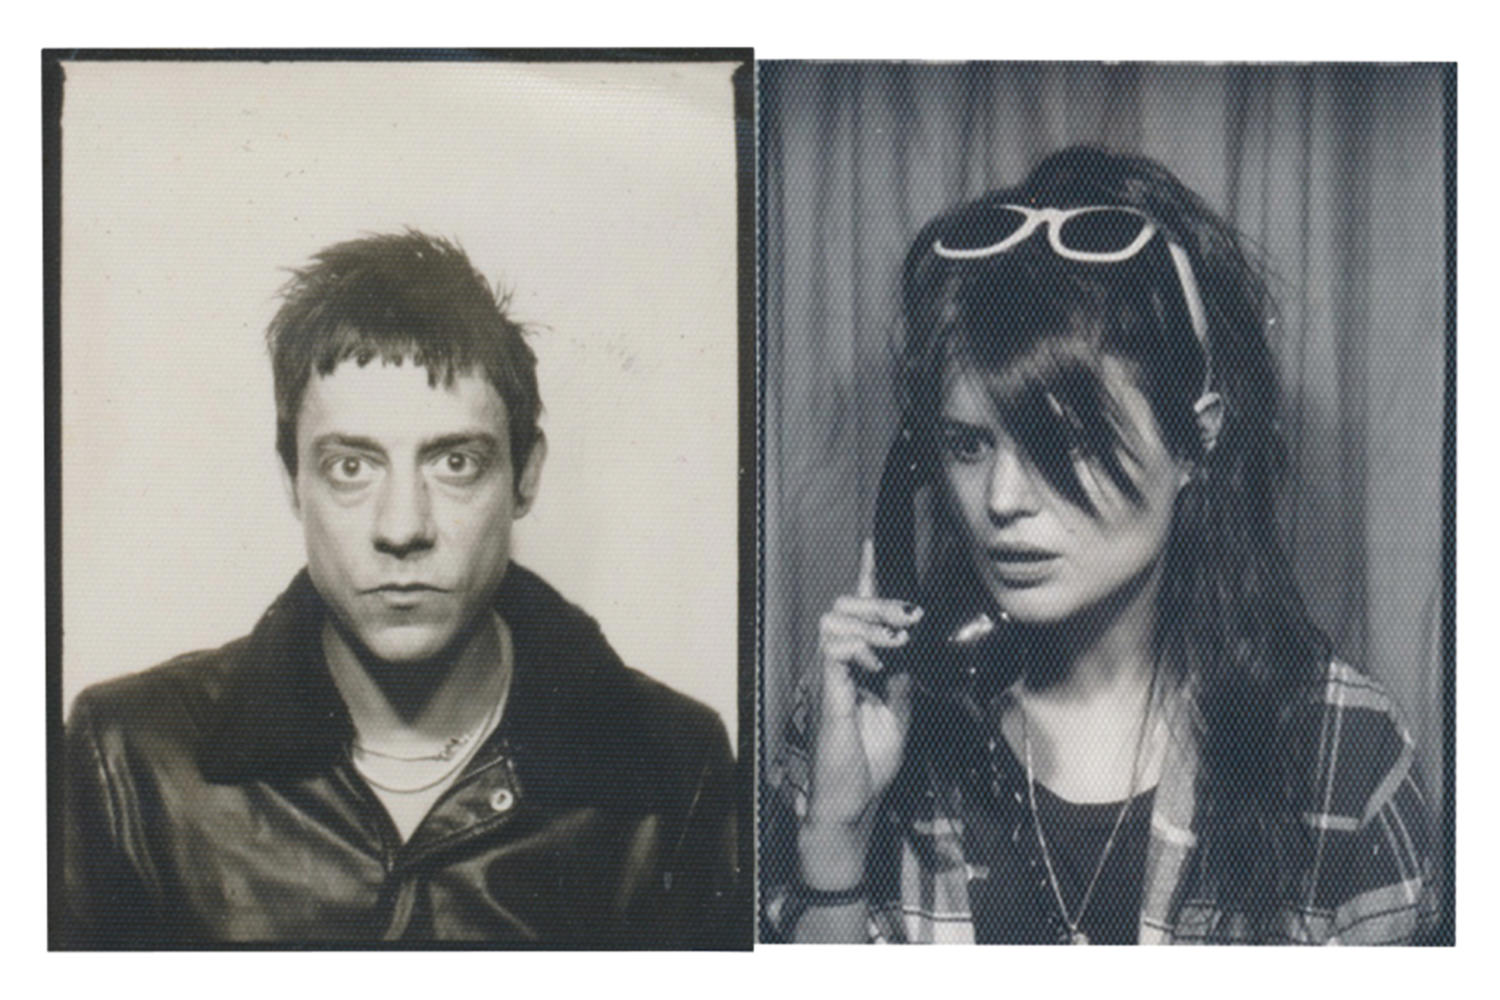 Tracks: The Kills, Celeste, Lykke Li and more